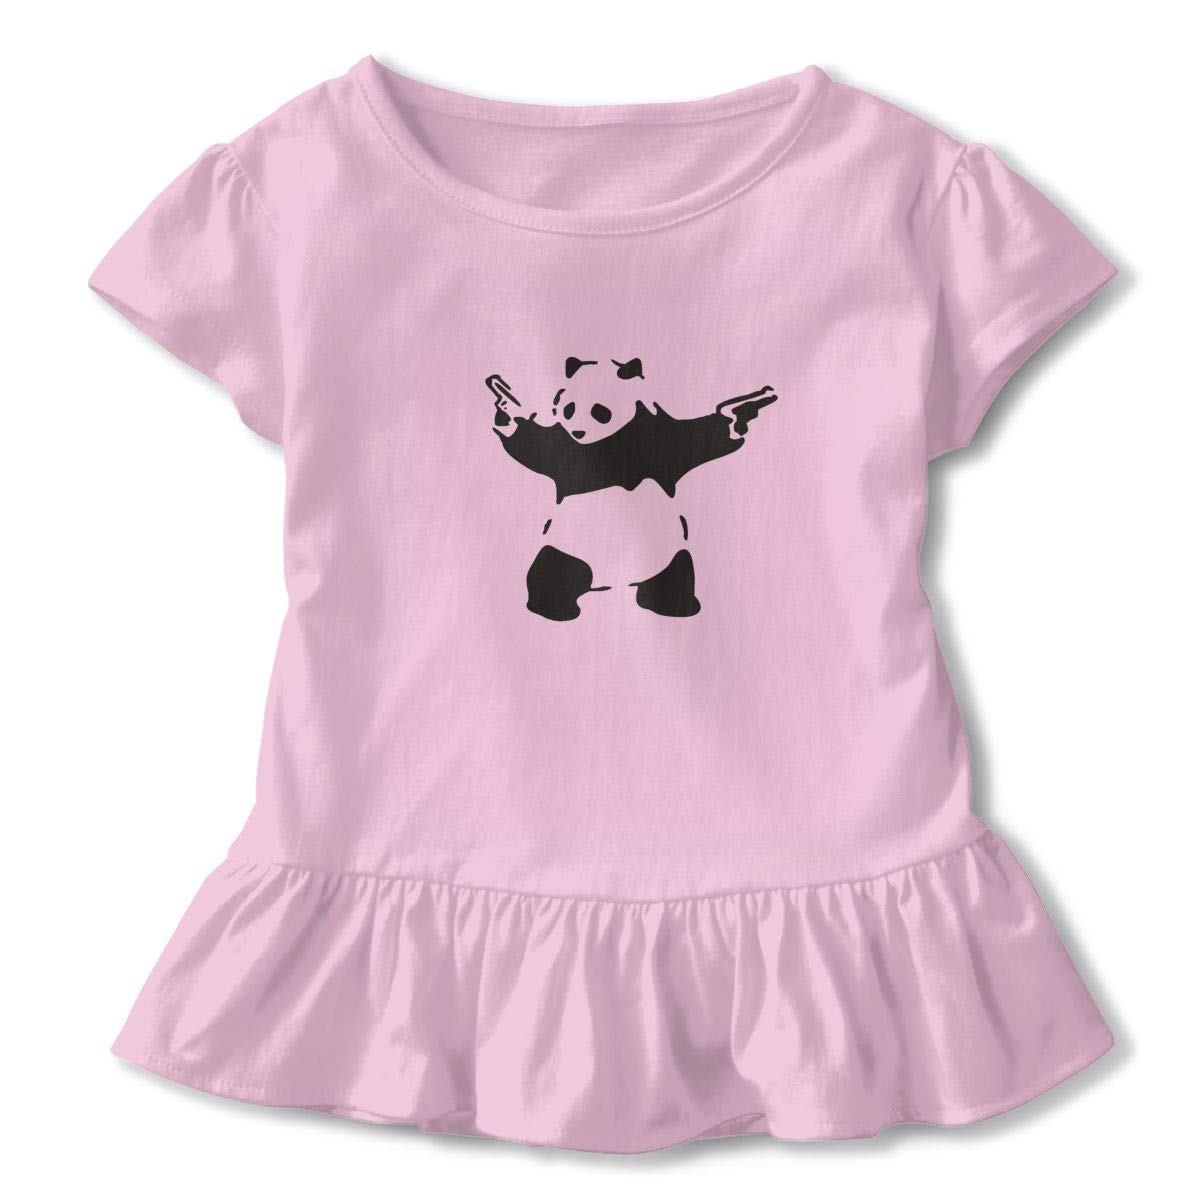 Panda with Guns Breathable Sweat-Absorbing Cotton Tee T-Shirts Shirts with Round Neck and Ruffles Casual Top for Toddlers Baby Girls Children Pink